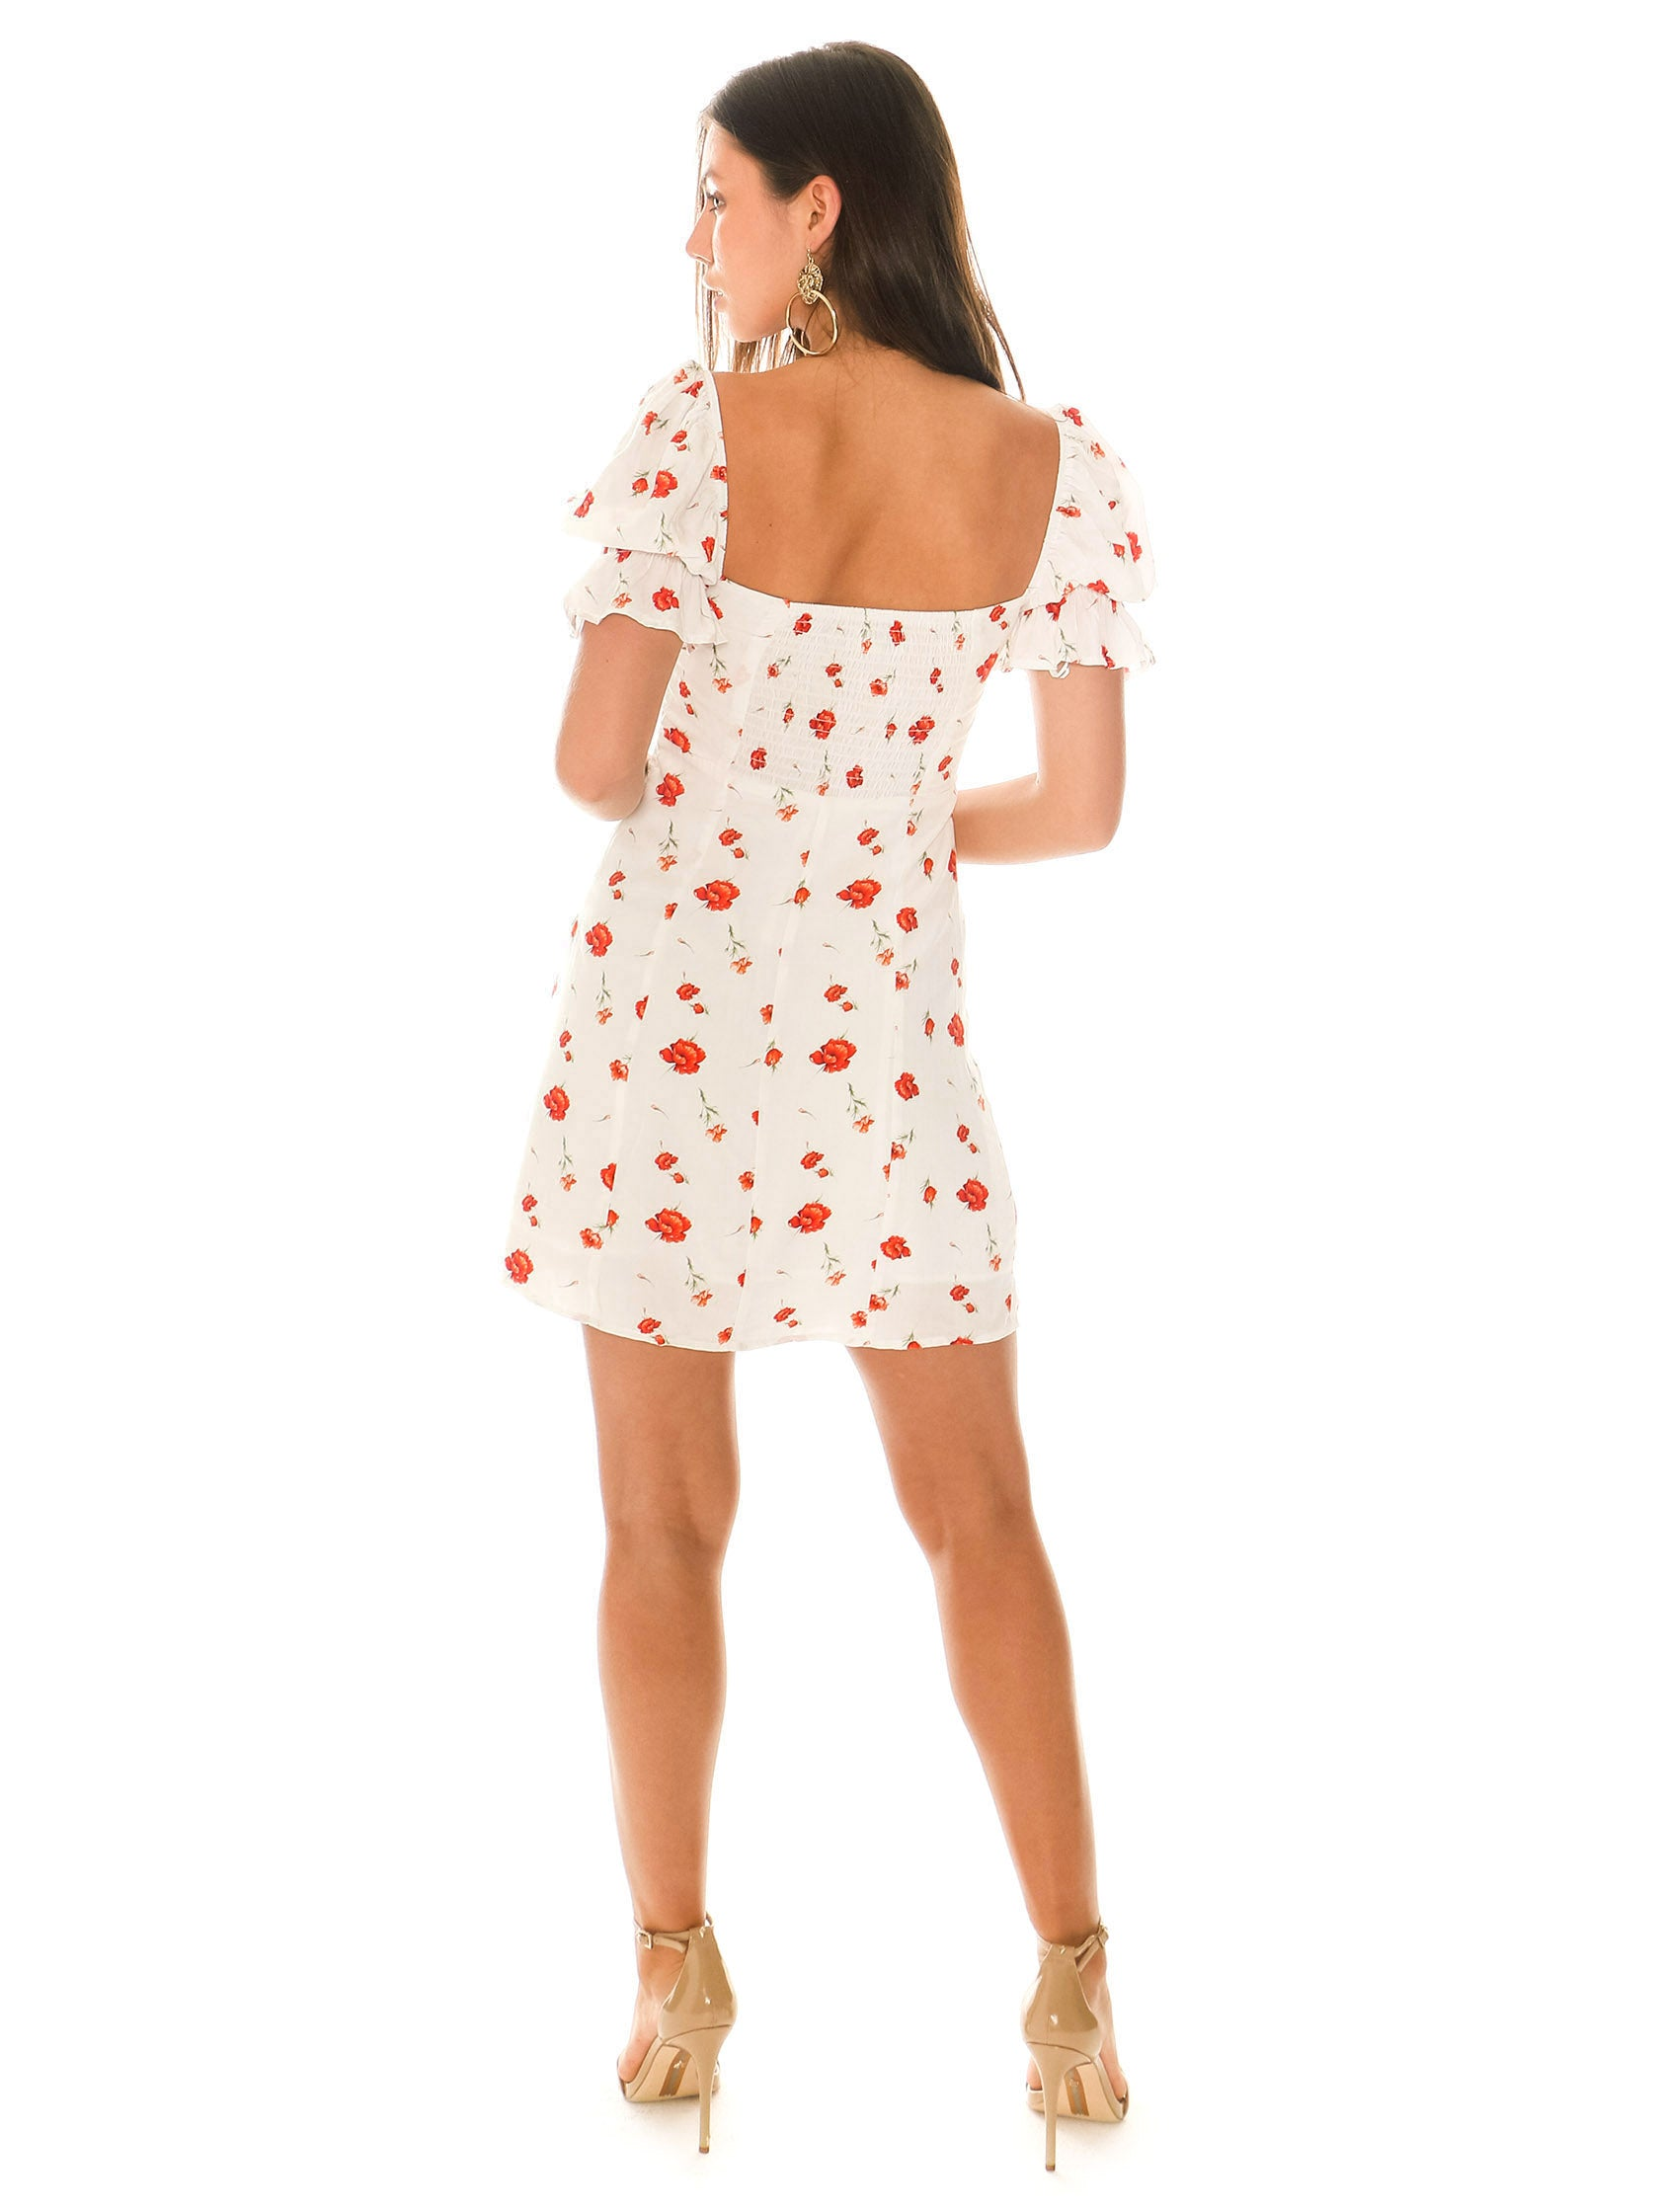 Women wearing a dress rental from Charlie Holiday called Valentine Floral Mini Dress